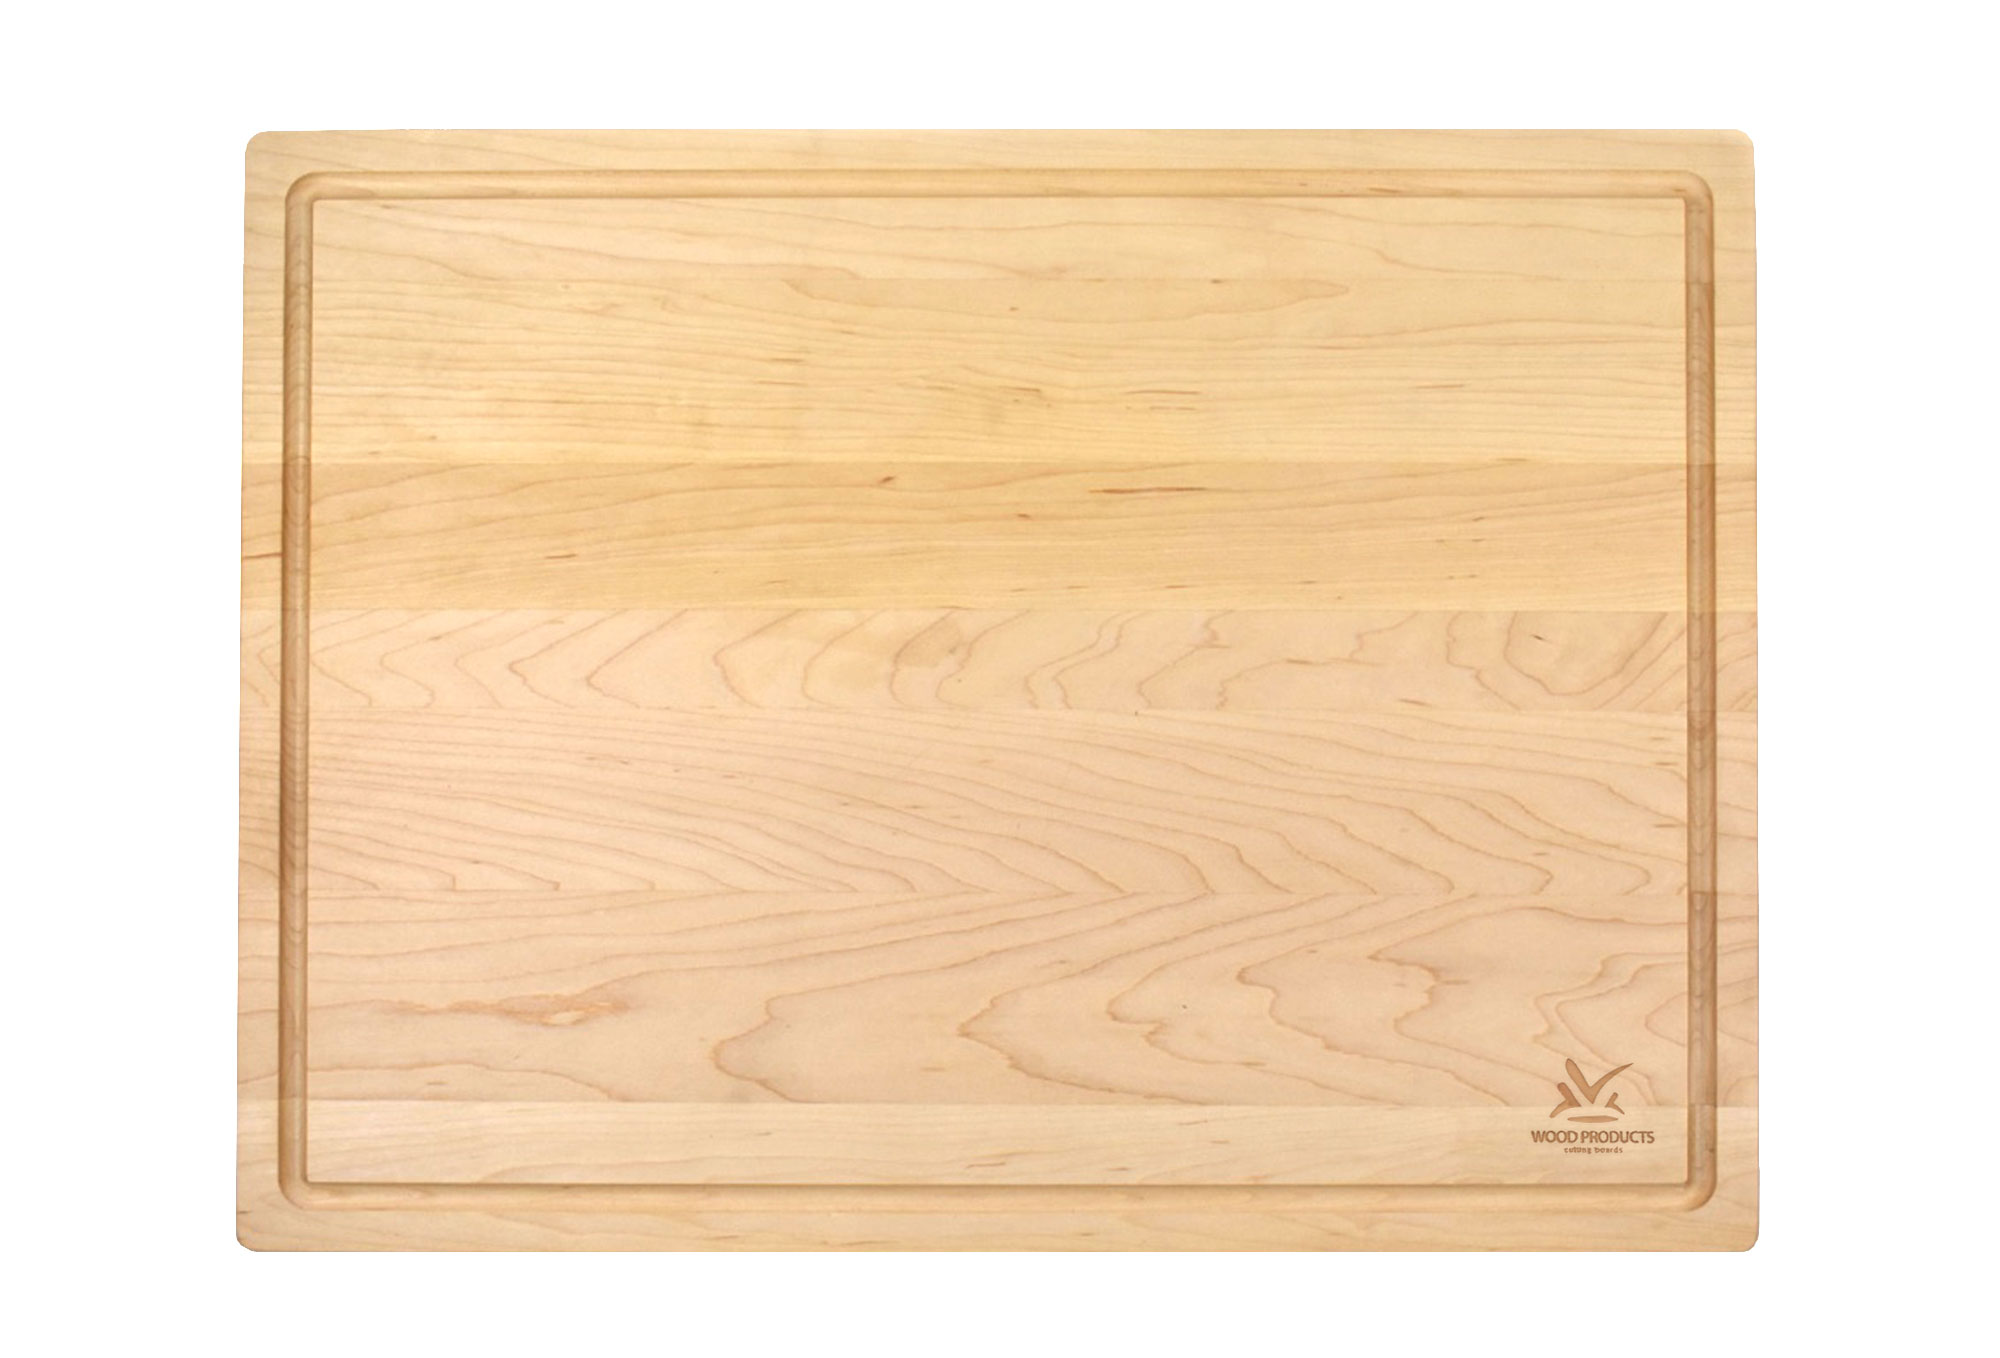 LARGE 1 3/4 INCH MAPLE BUTCHER BLOCK WITH JUICE GROOVE Engraved